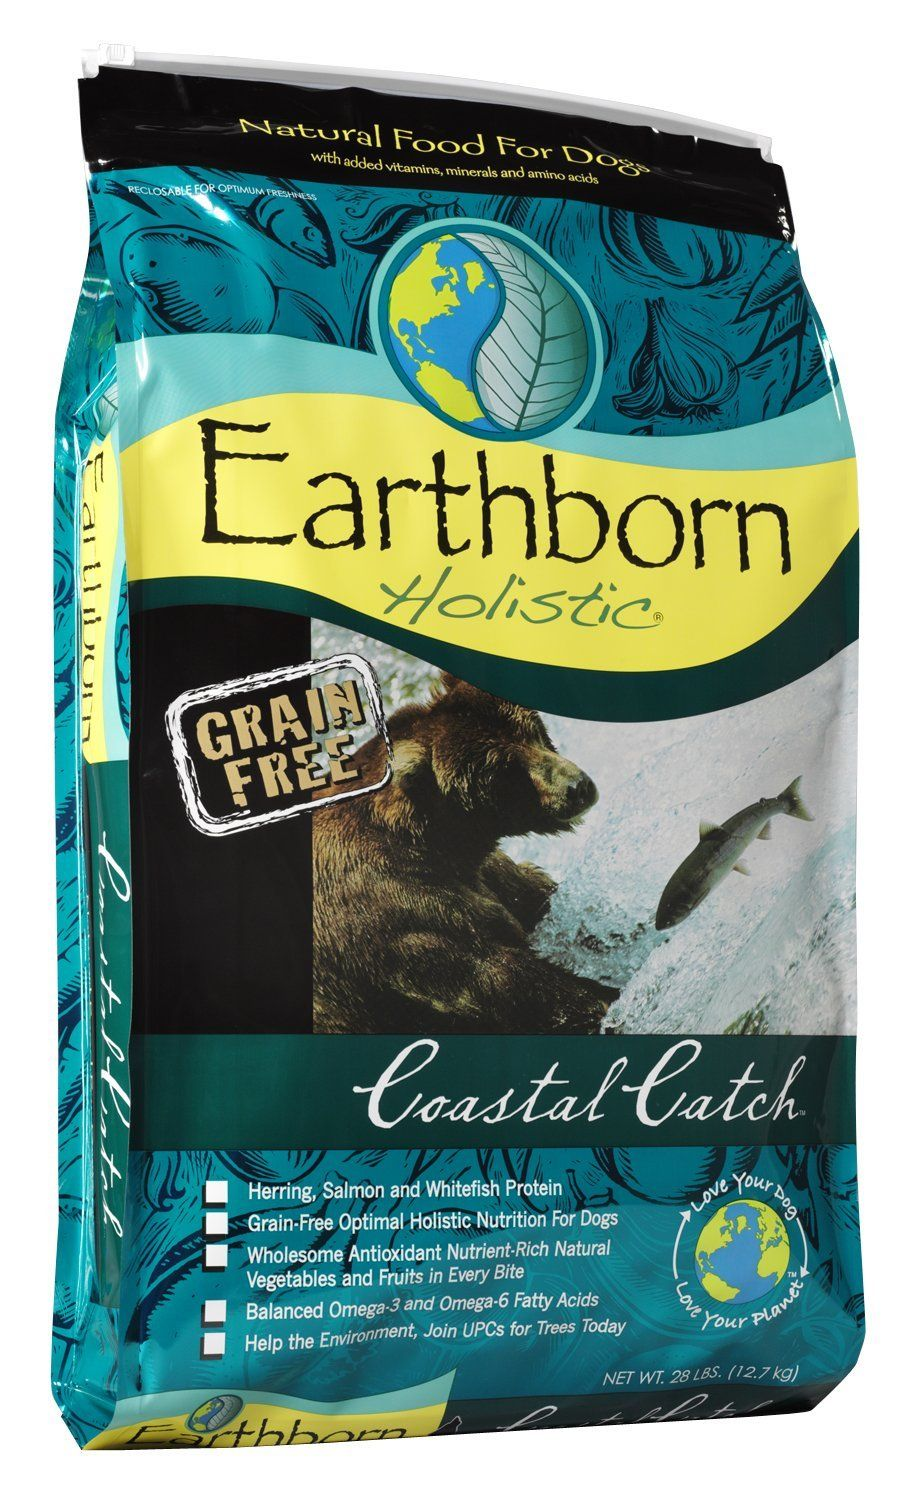 Earthborn Holistic Meadow Feast Dog Food, Natural Flavour